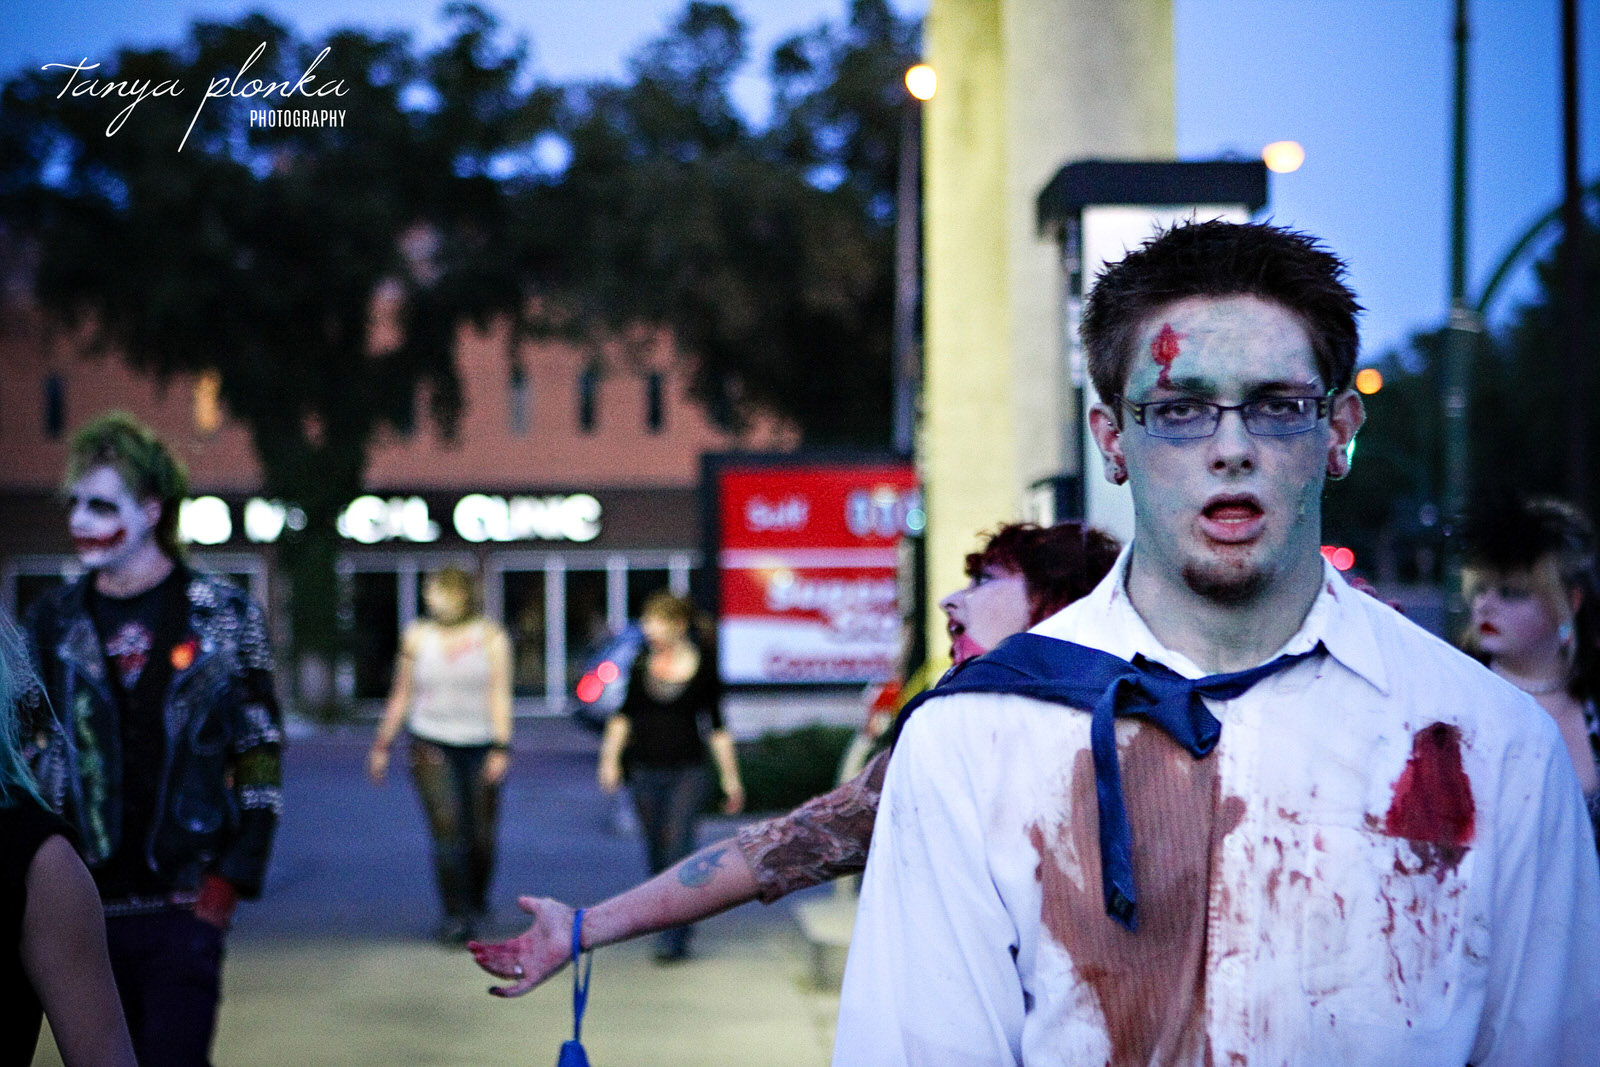 zombies pass through a Lethbridge gas station during the Zombie Walk